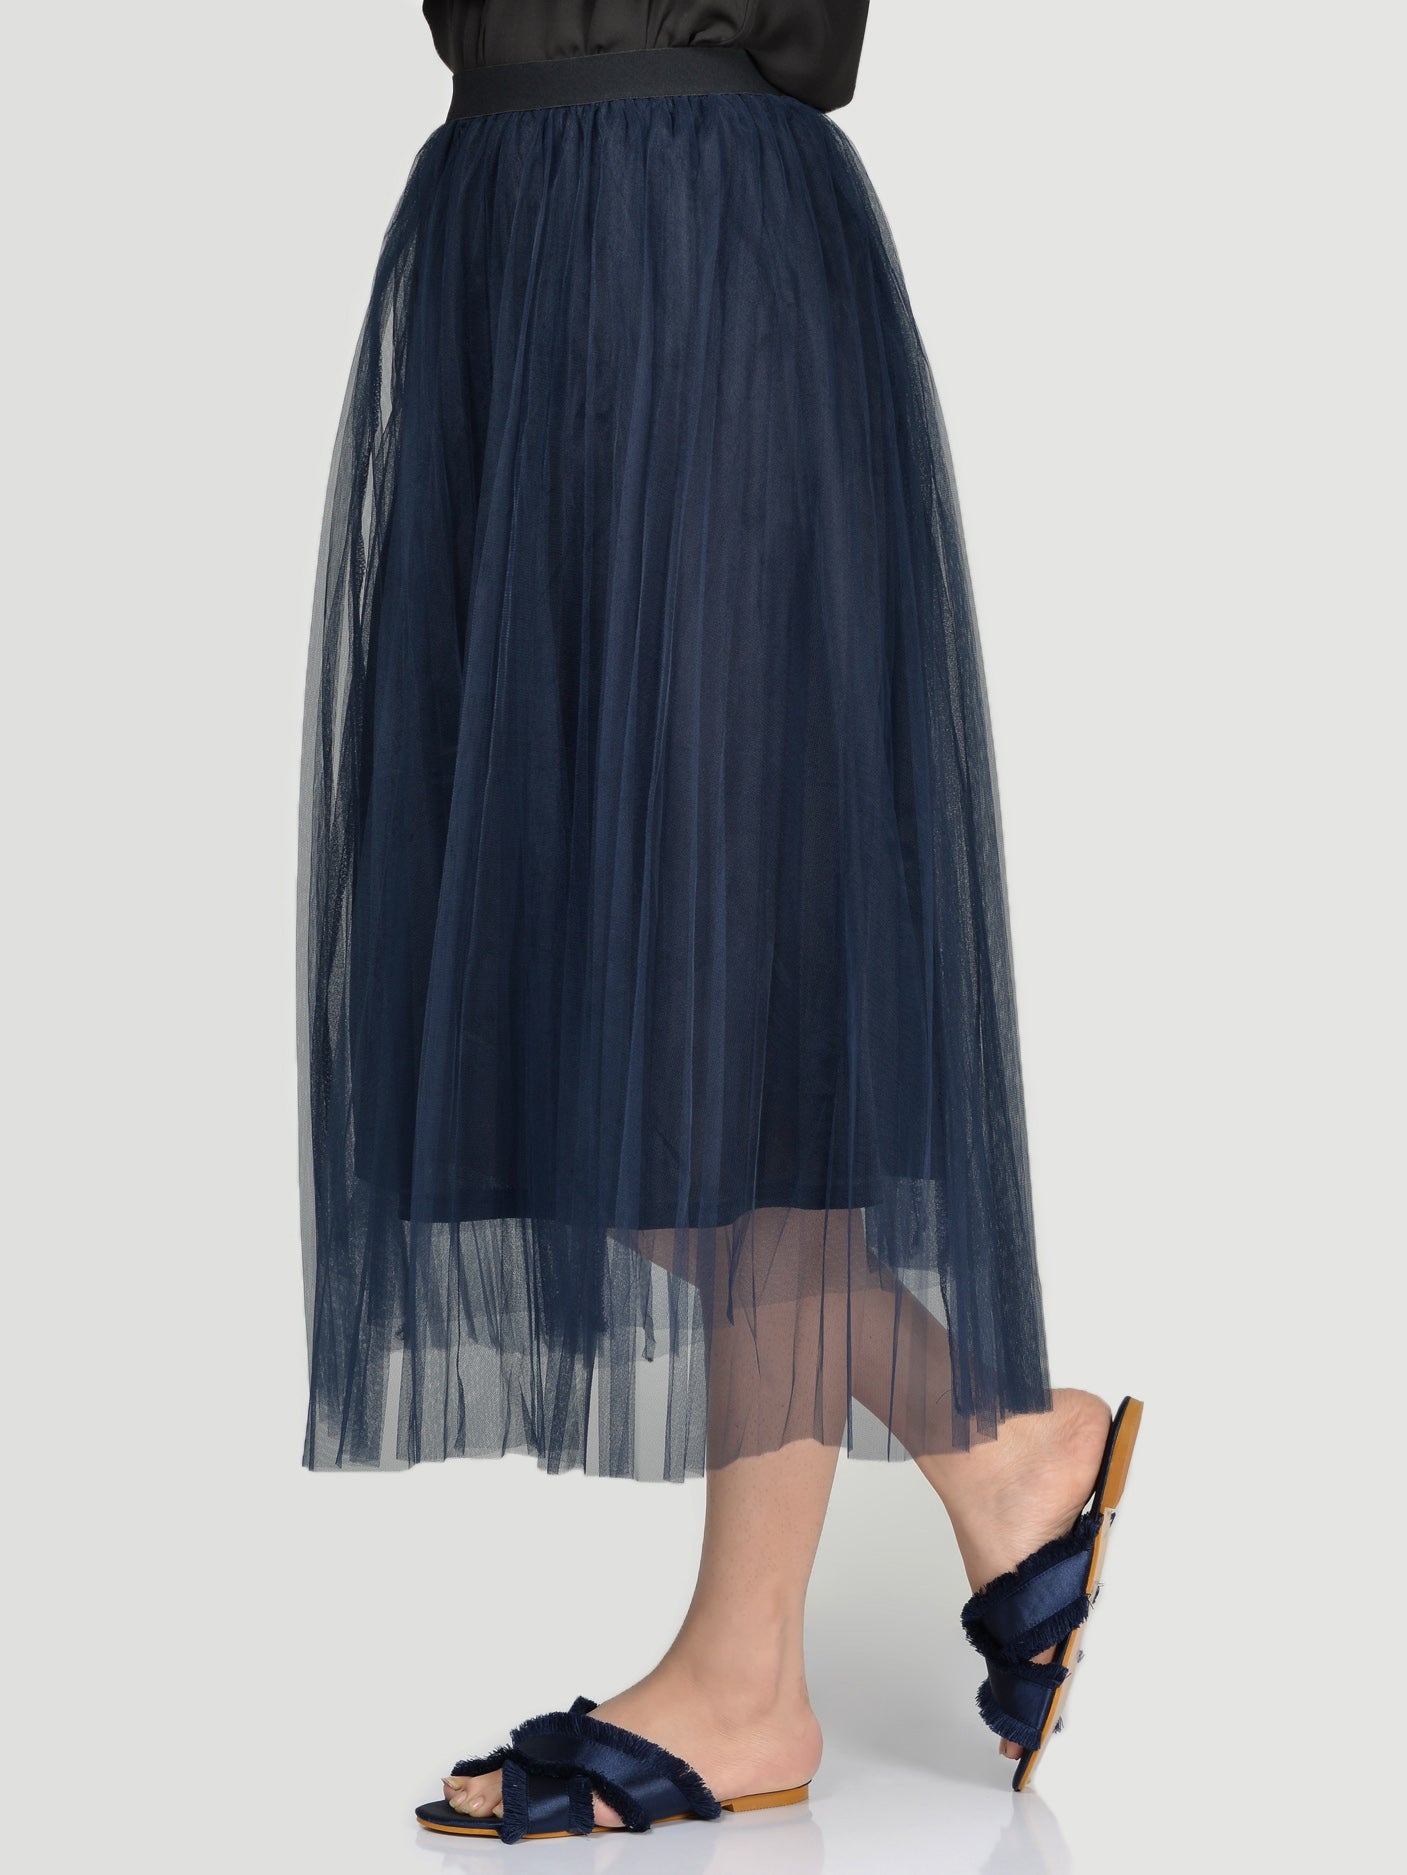 Net Skirt-Navy Blue